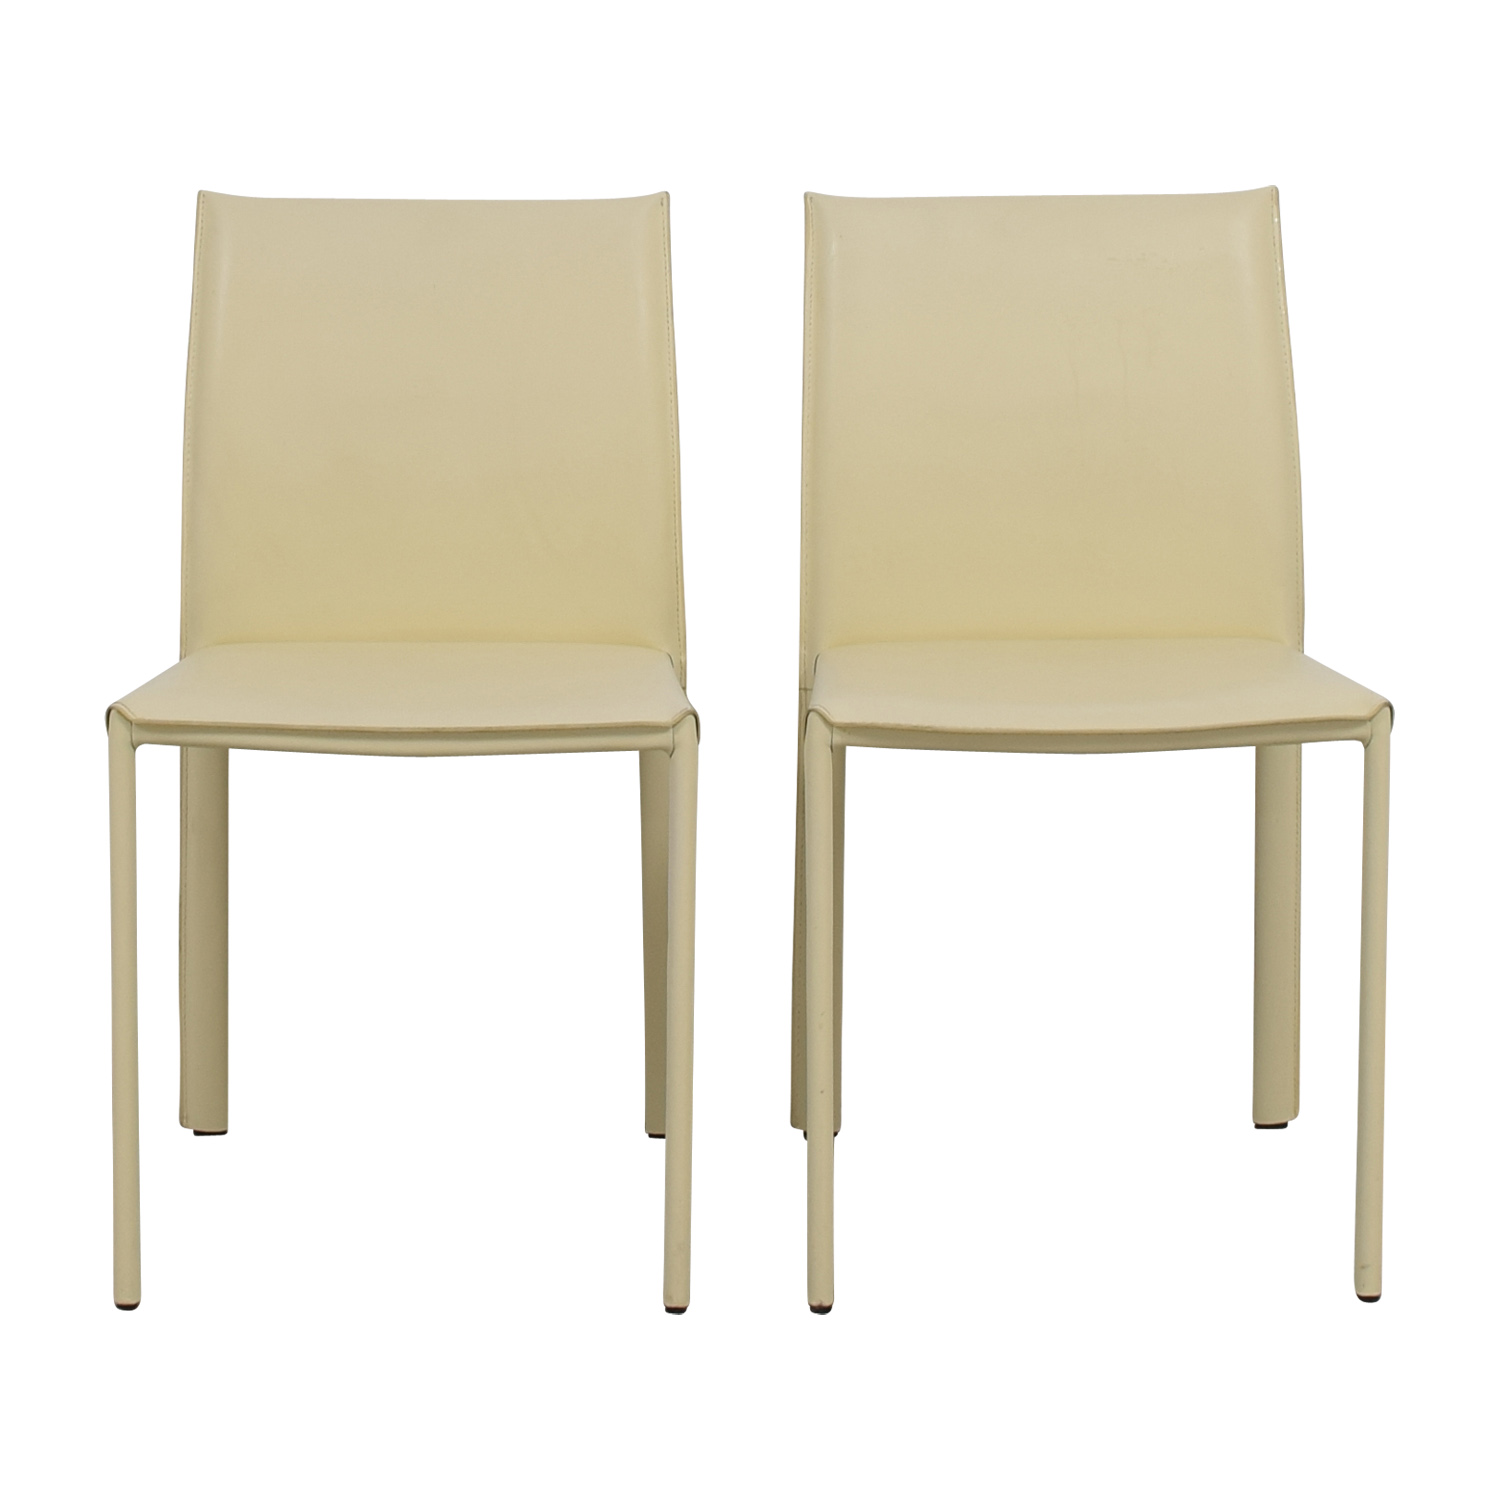 Baxton Studio Crawford Ivory Leather Chairs Baxton Studio